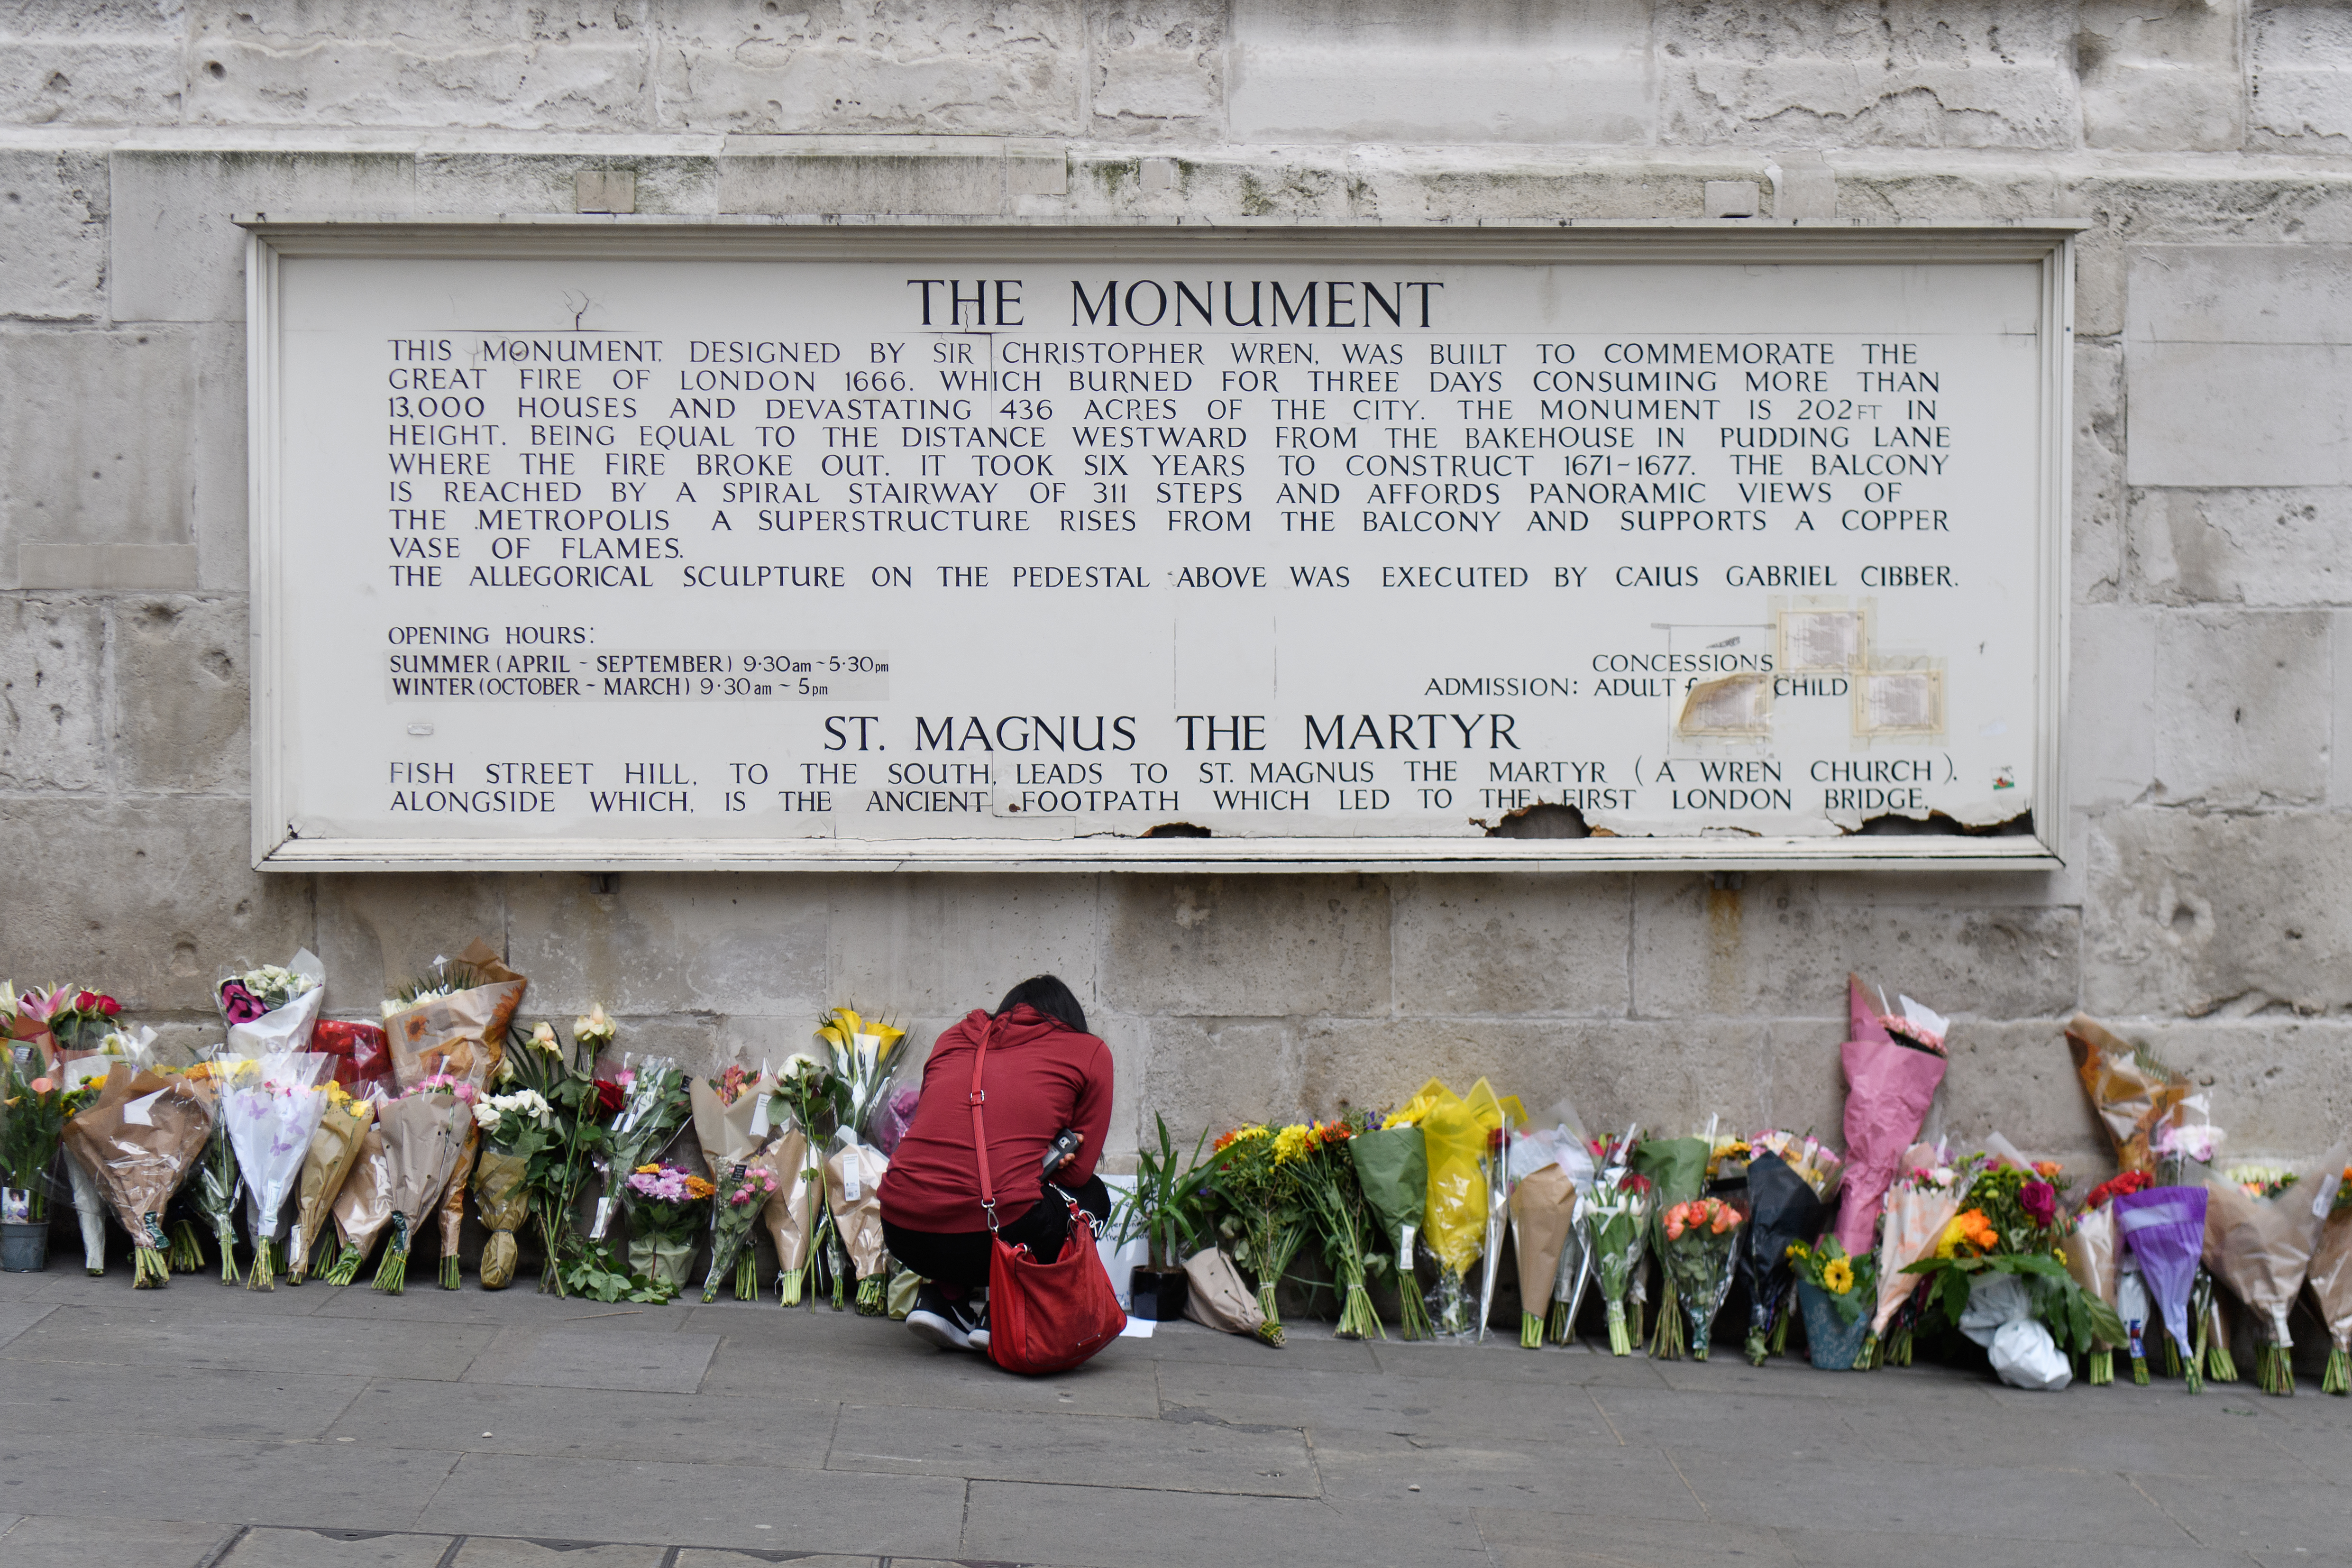 A woman looks at some of the floral tributes at Monument, near London Bridge, following the June 3rd terror attack on June 5, 2017 in London, England.